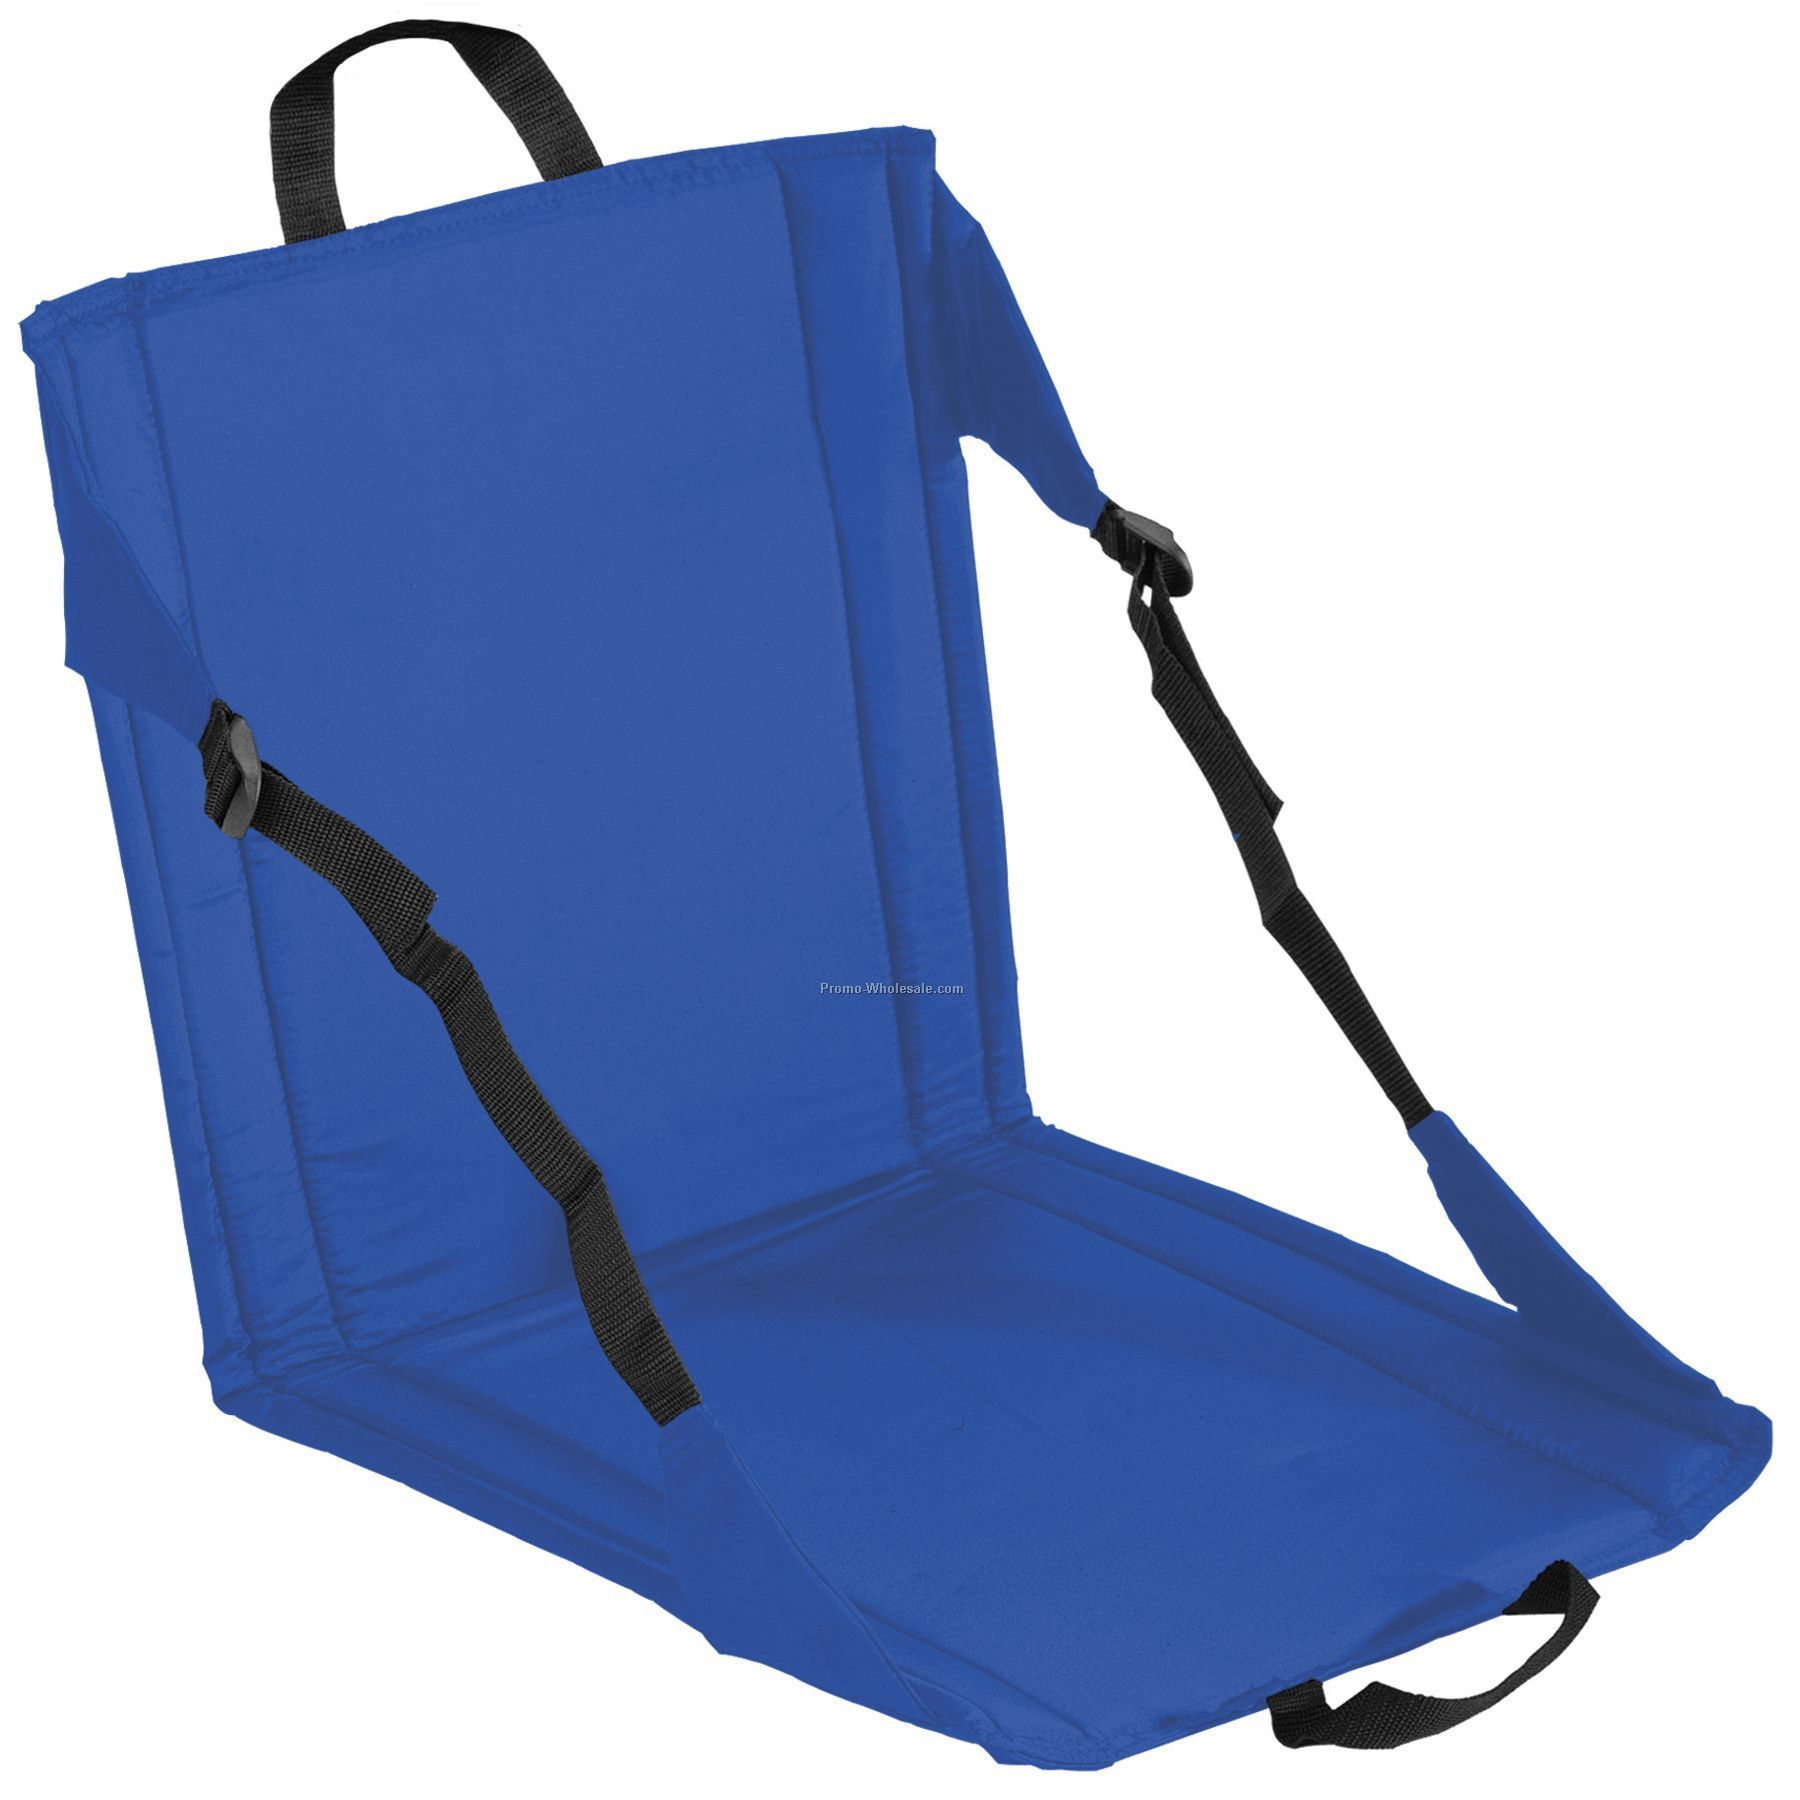 SEAT CUSHIONS AND WATERPROOF AND FOLDING CHAIR  Chair